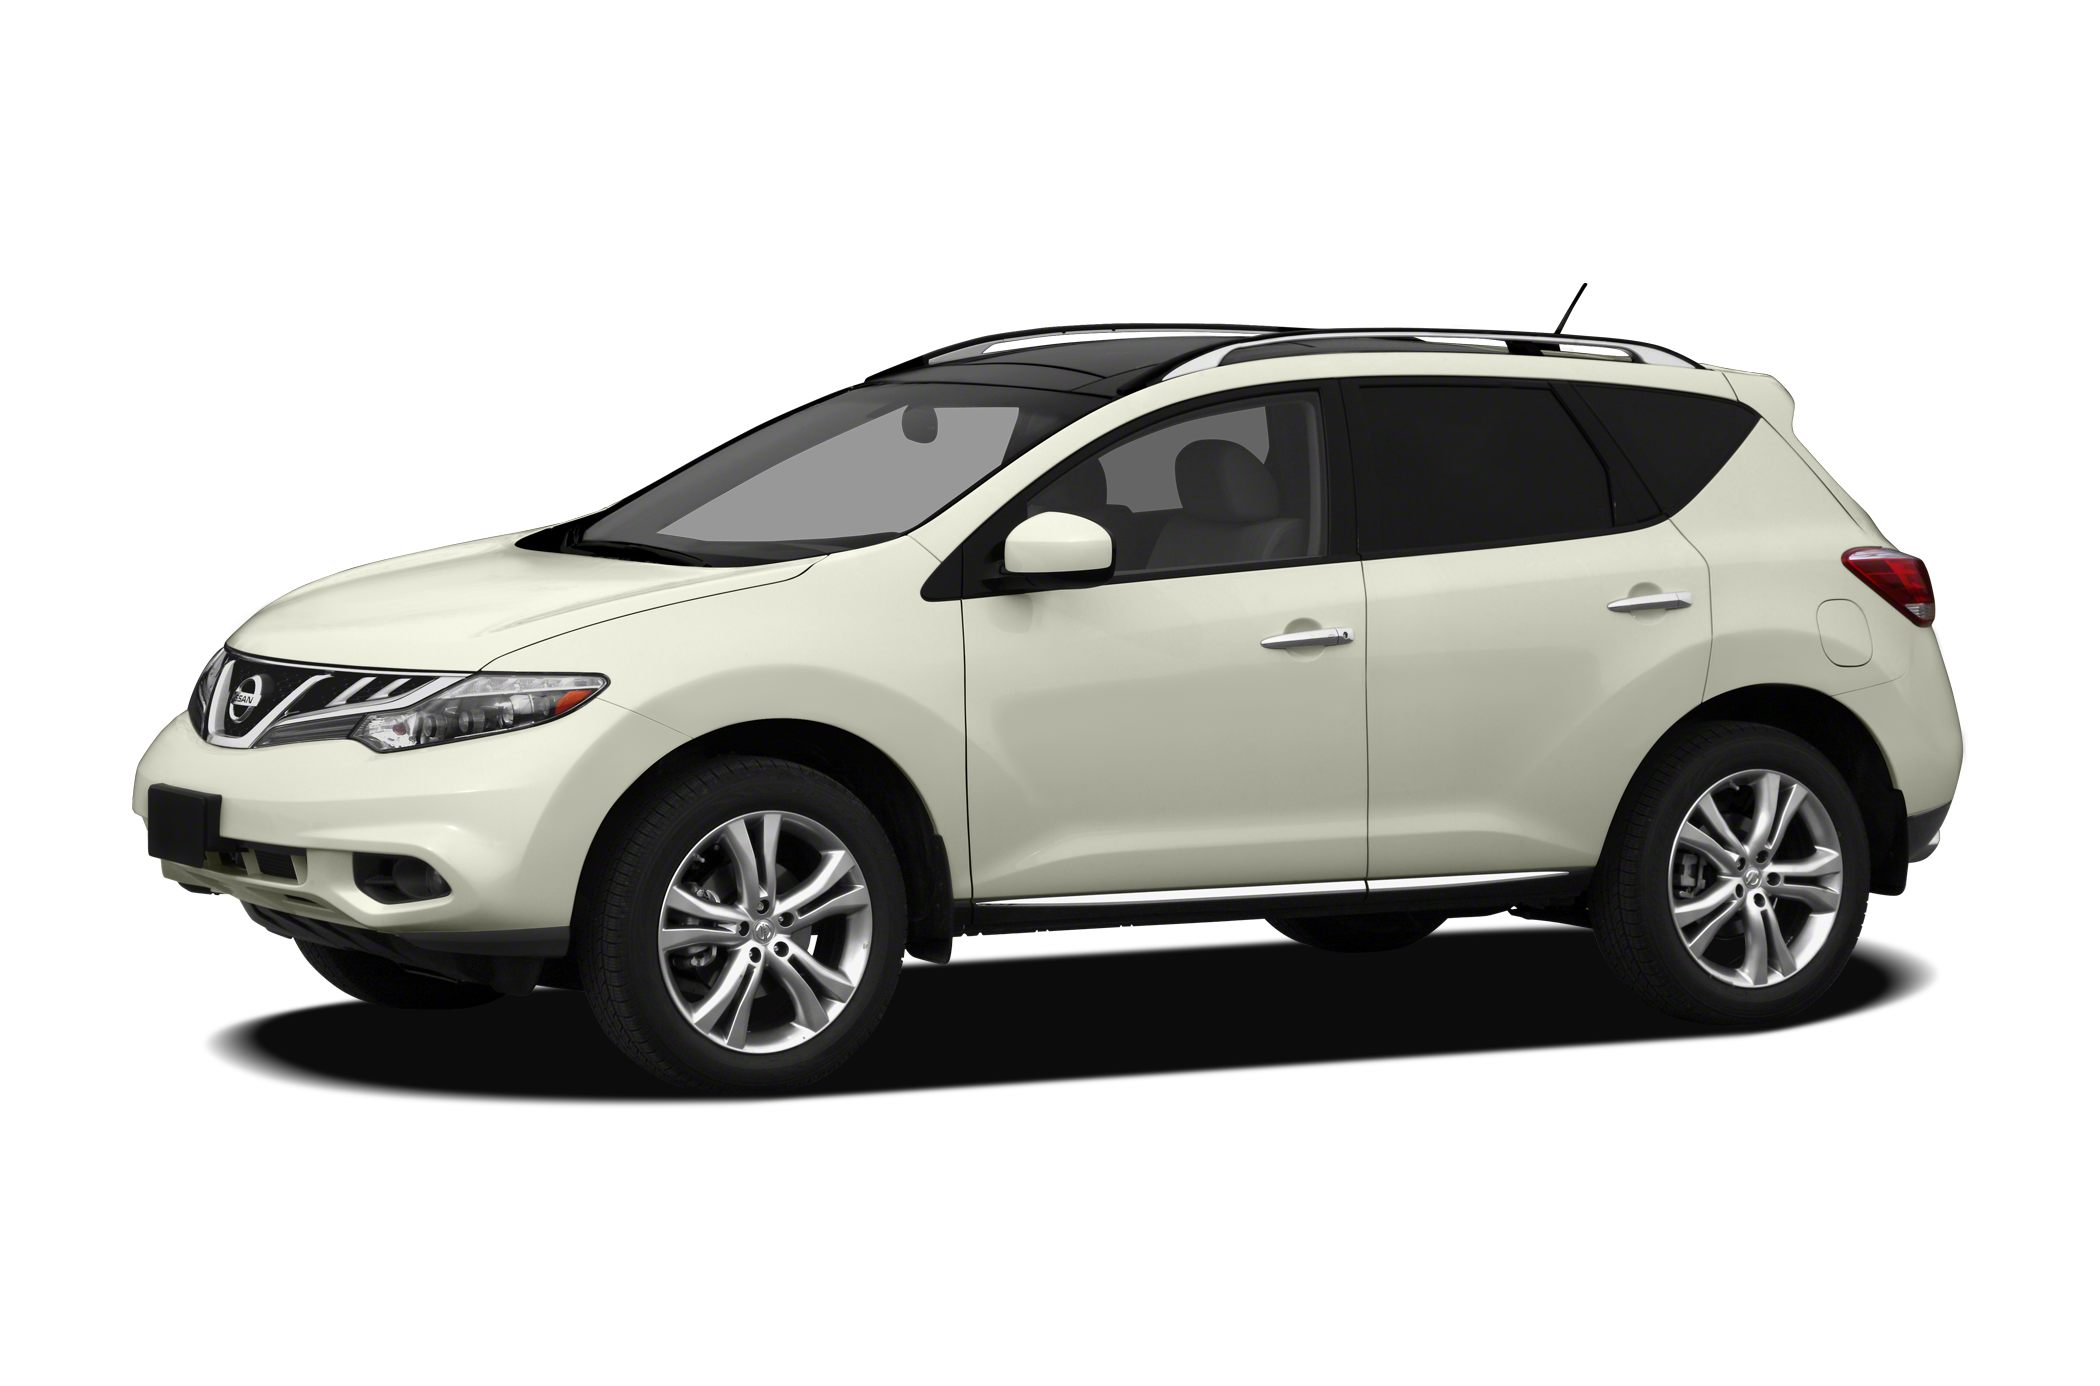 2012 Nissan Murano SL Vehicle Detailed Recent Oil Change and Passed Dealer Inspection You Win